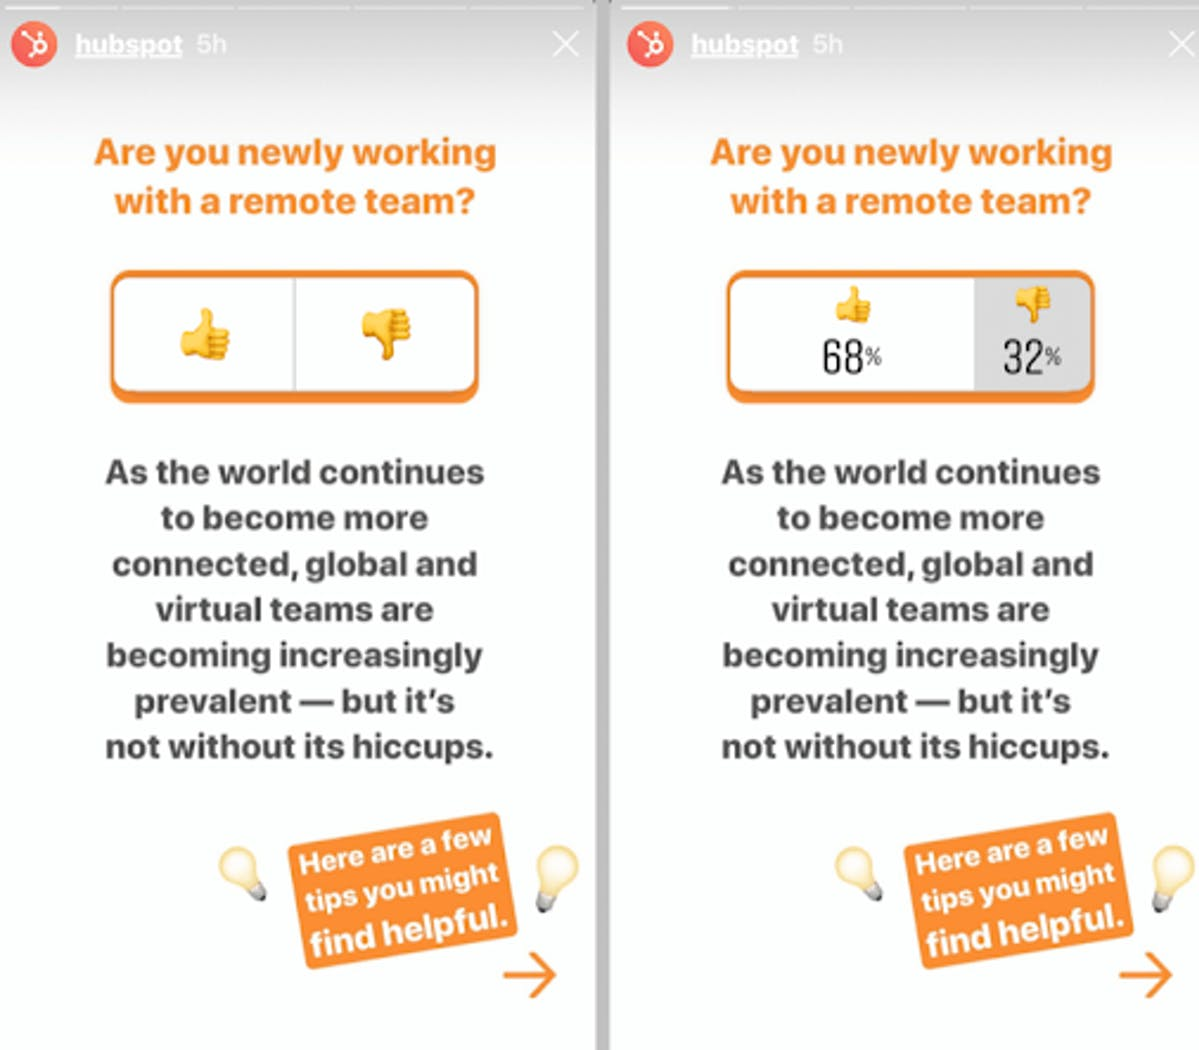 HubSpot uses Instagram Stories to direct users to their content